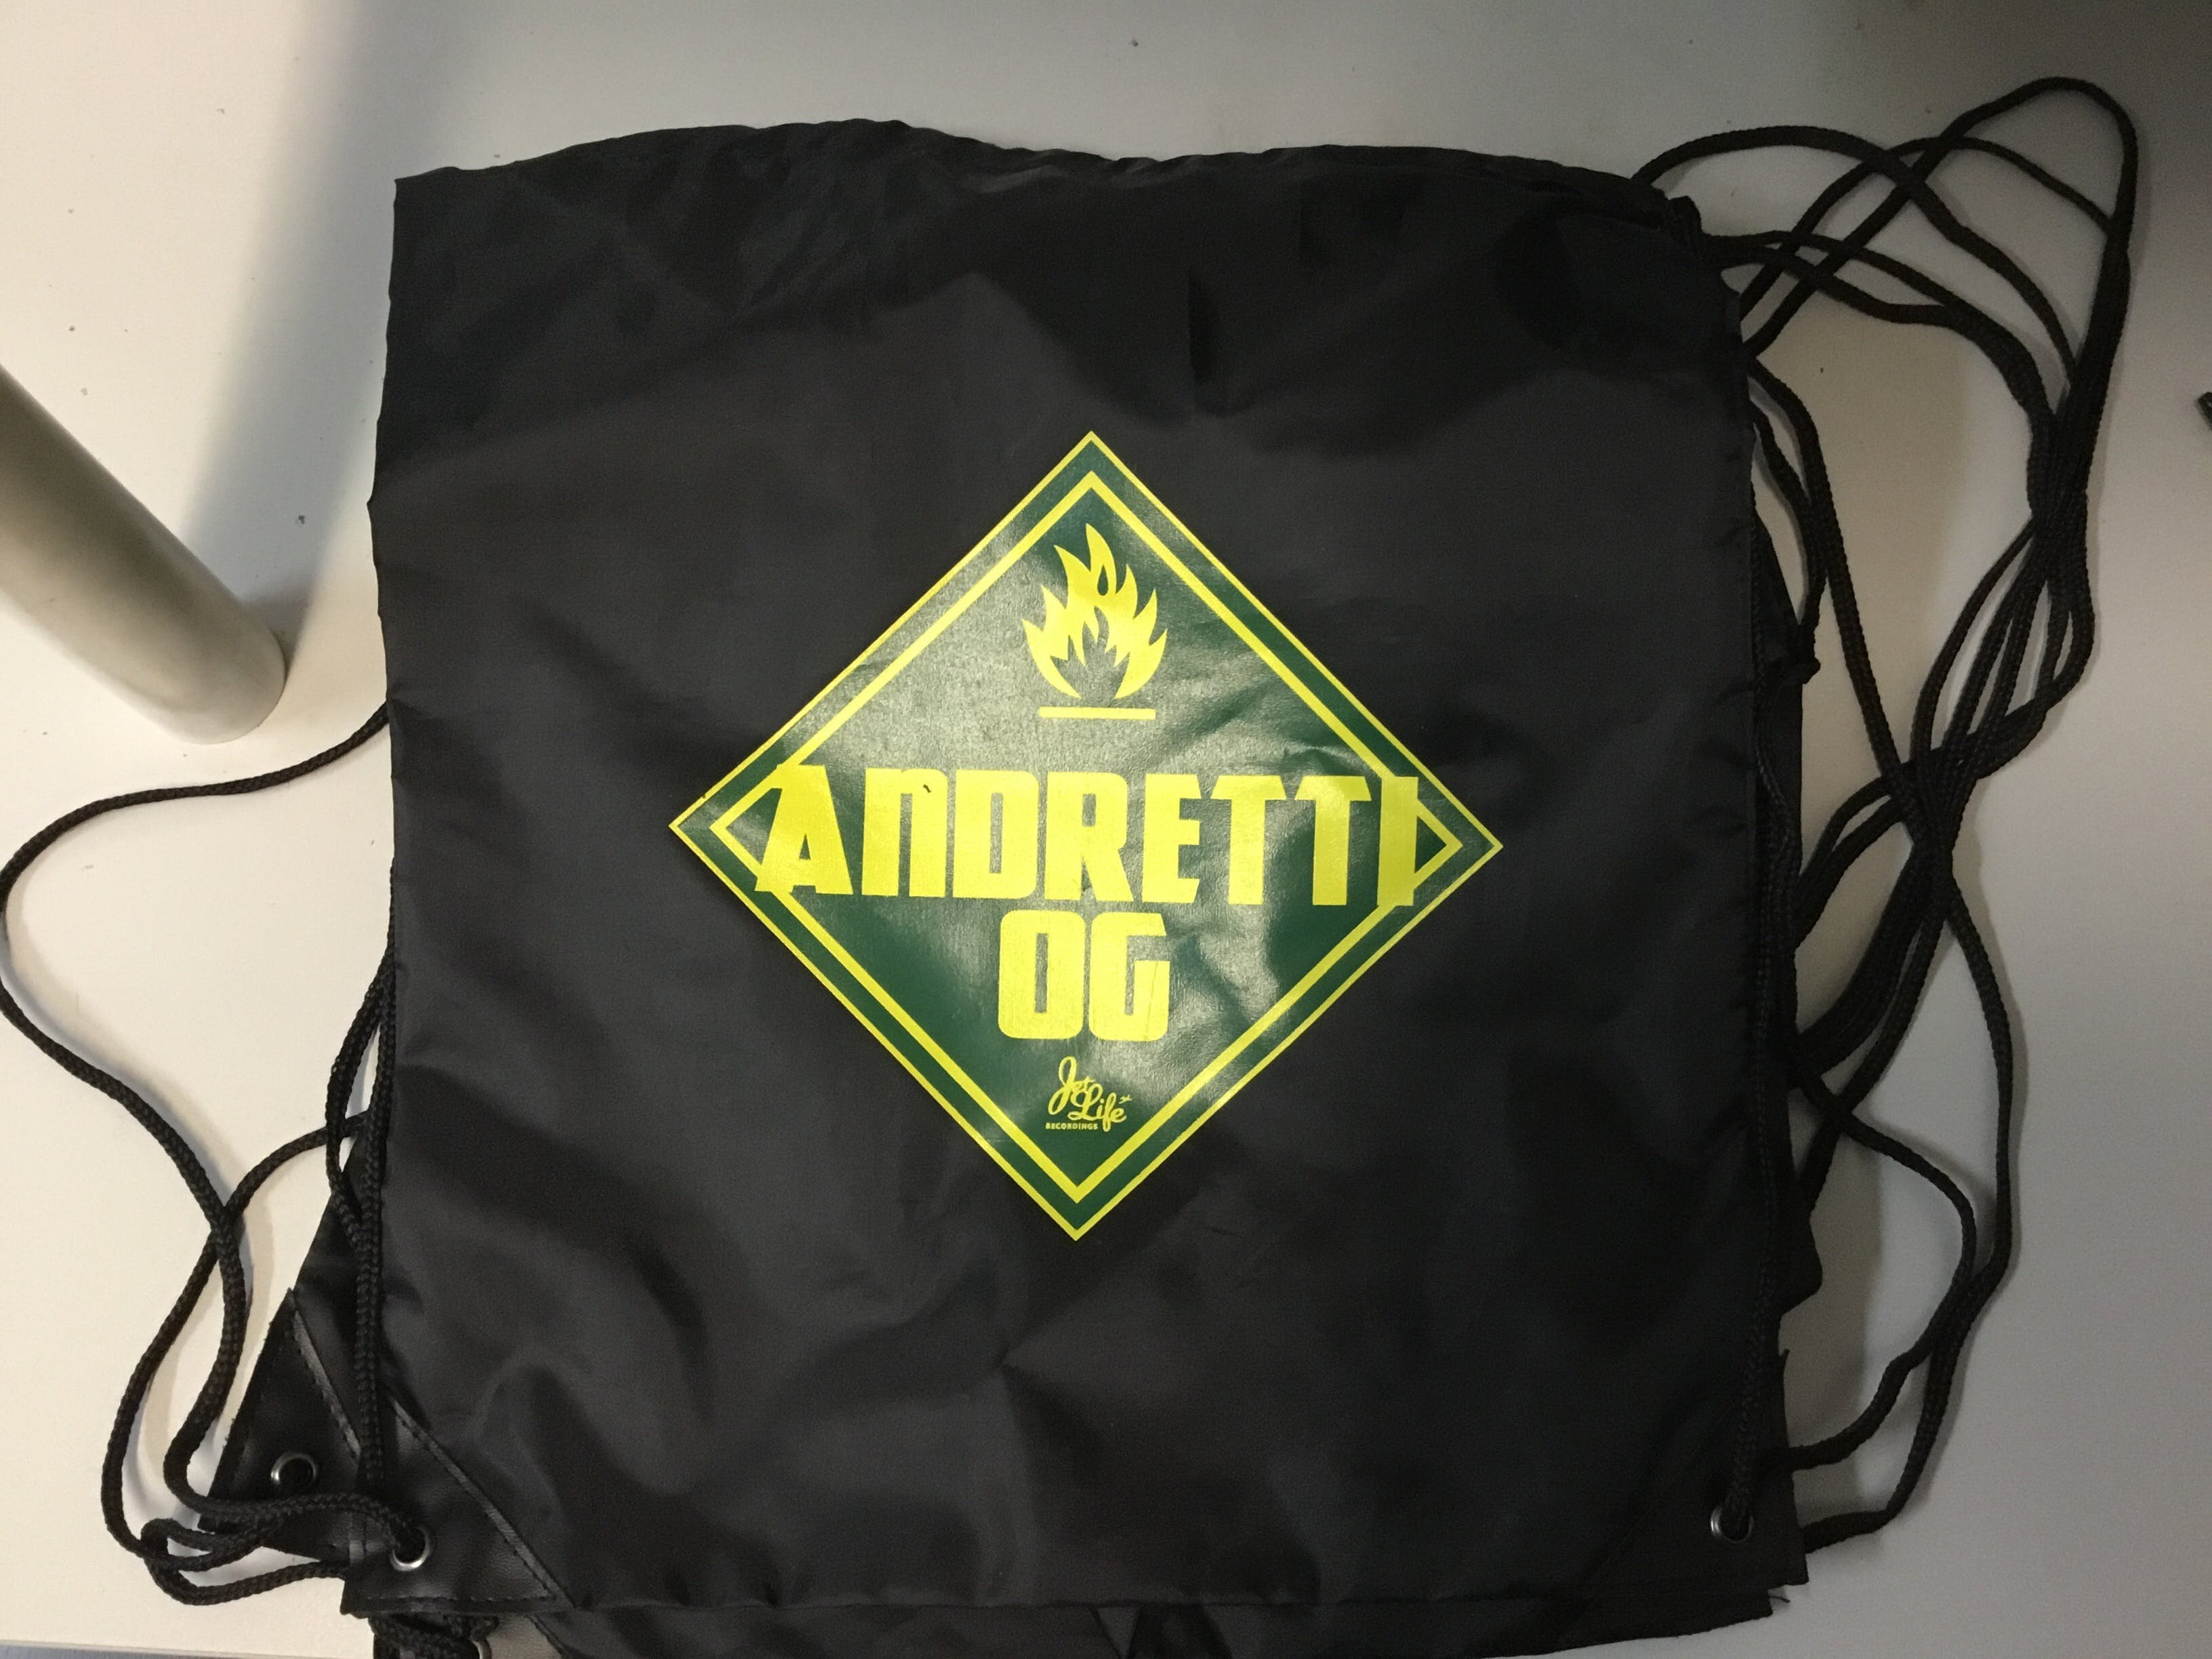 marijuana-dispensaries-call-for-address-whittier-andretti-og-string-bag